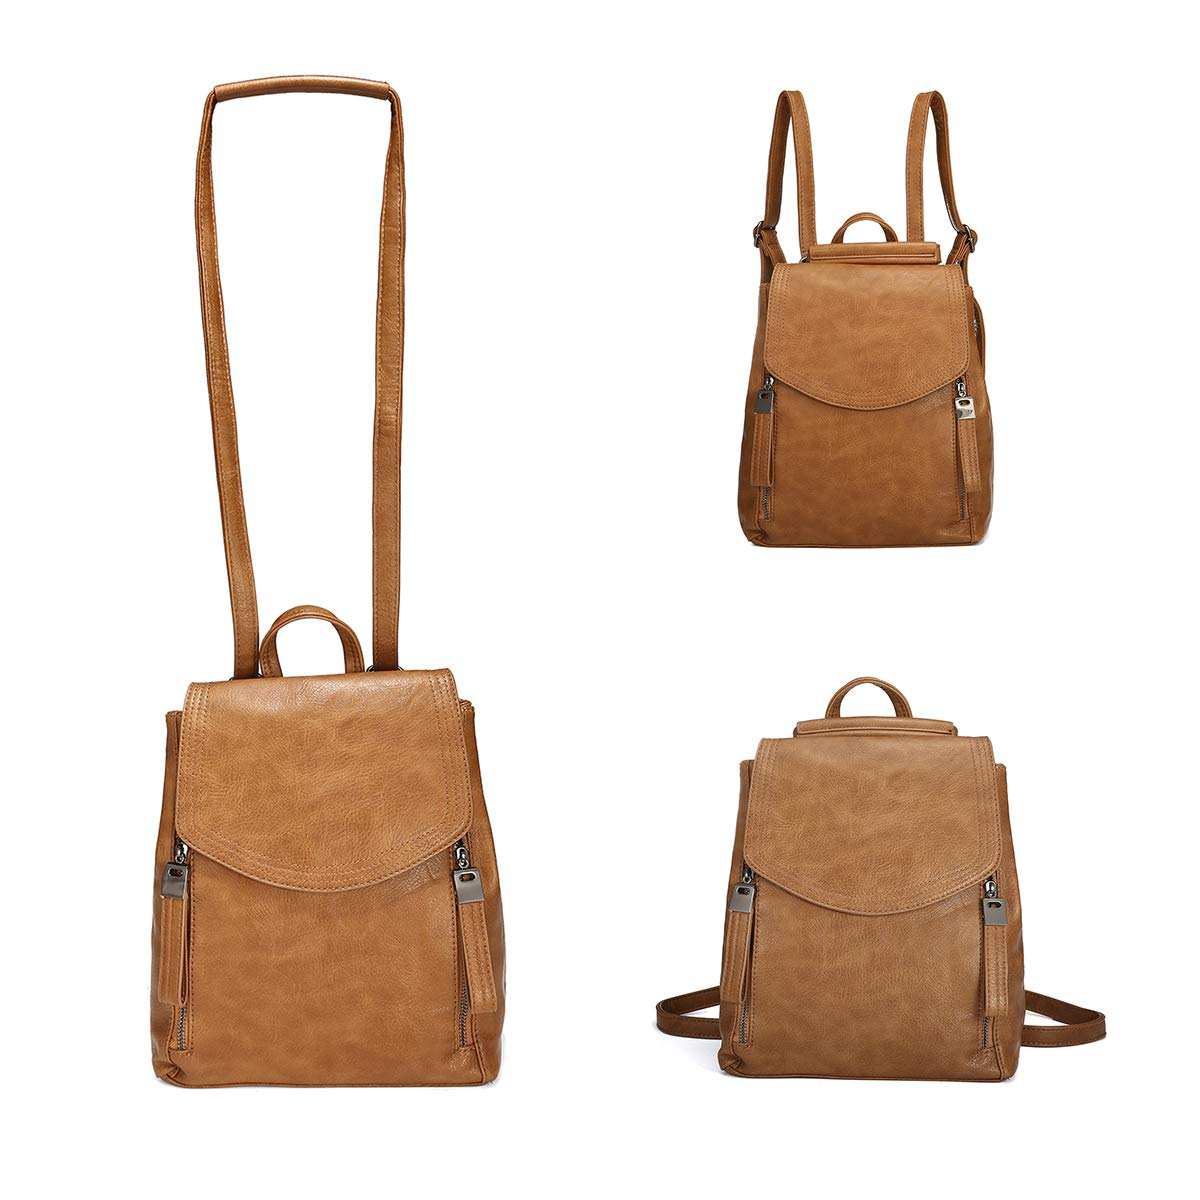 Women Backpack, JOSEKO Leather Flap Backpack Purse Casual Daypack for Ladies College Girls with Adjustable Straps Brown 9.4''x5.1''x11.4'' by JOSEKO